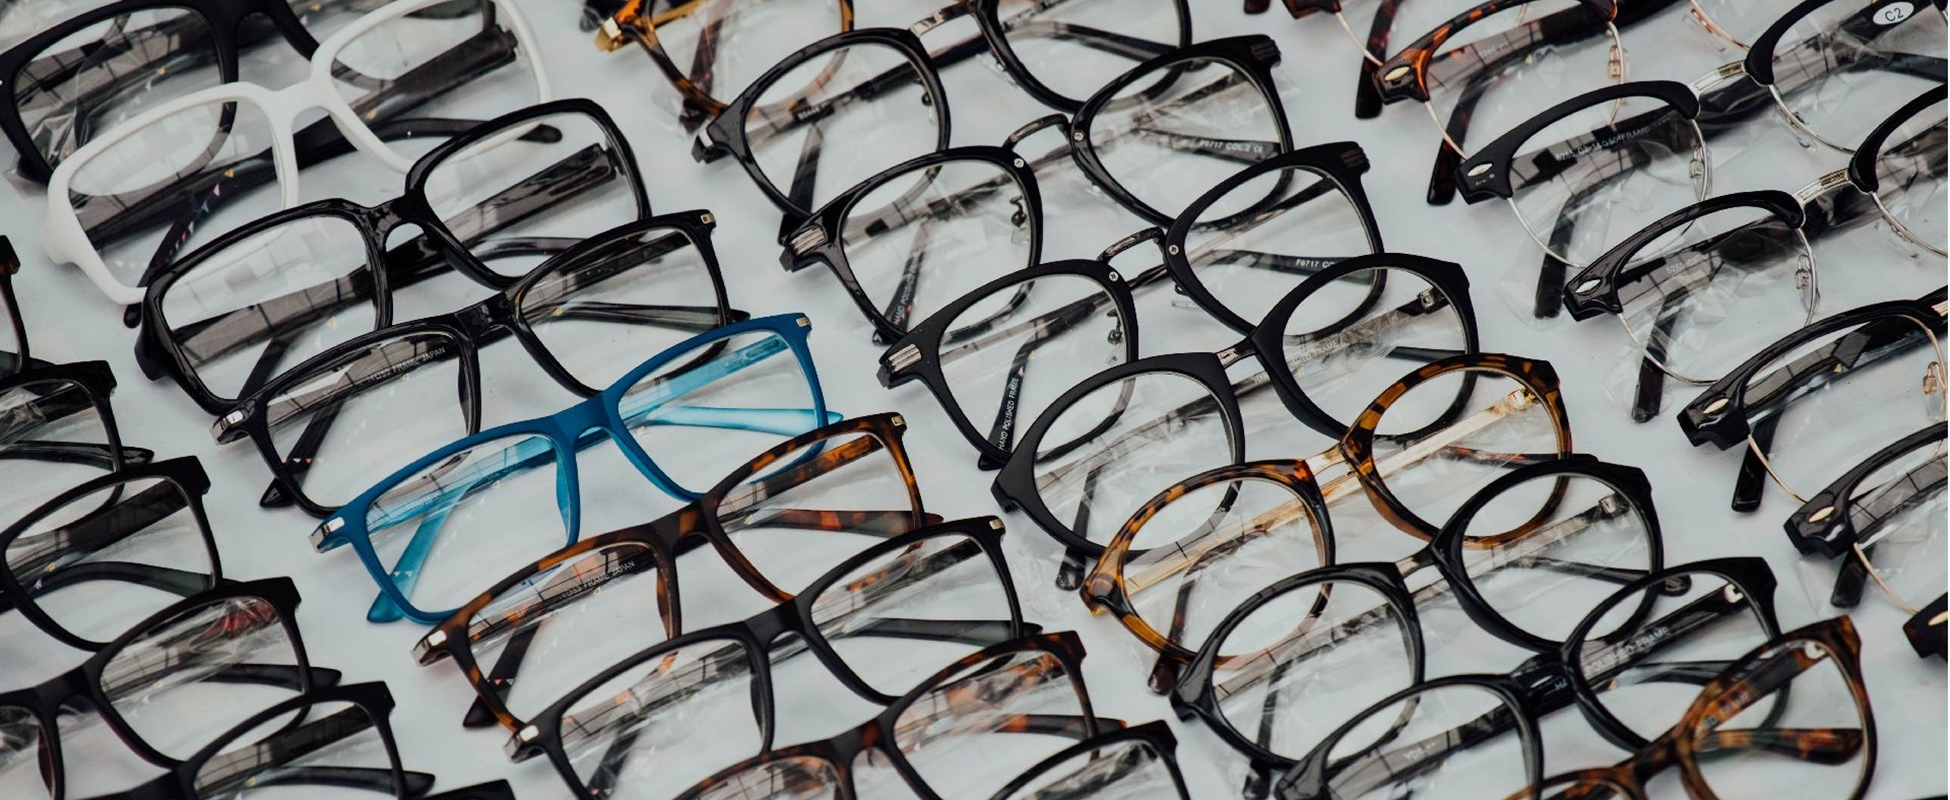 Eyeglass frames stacked neatly